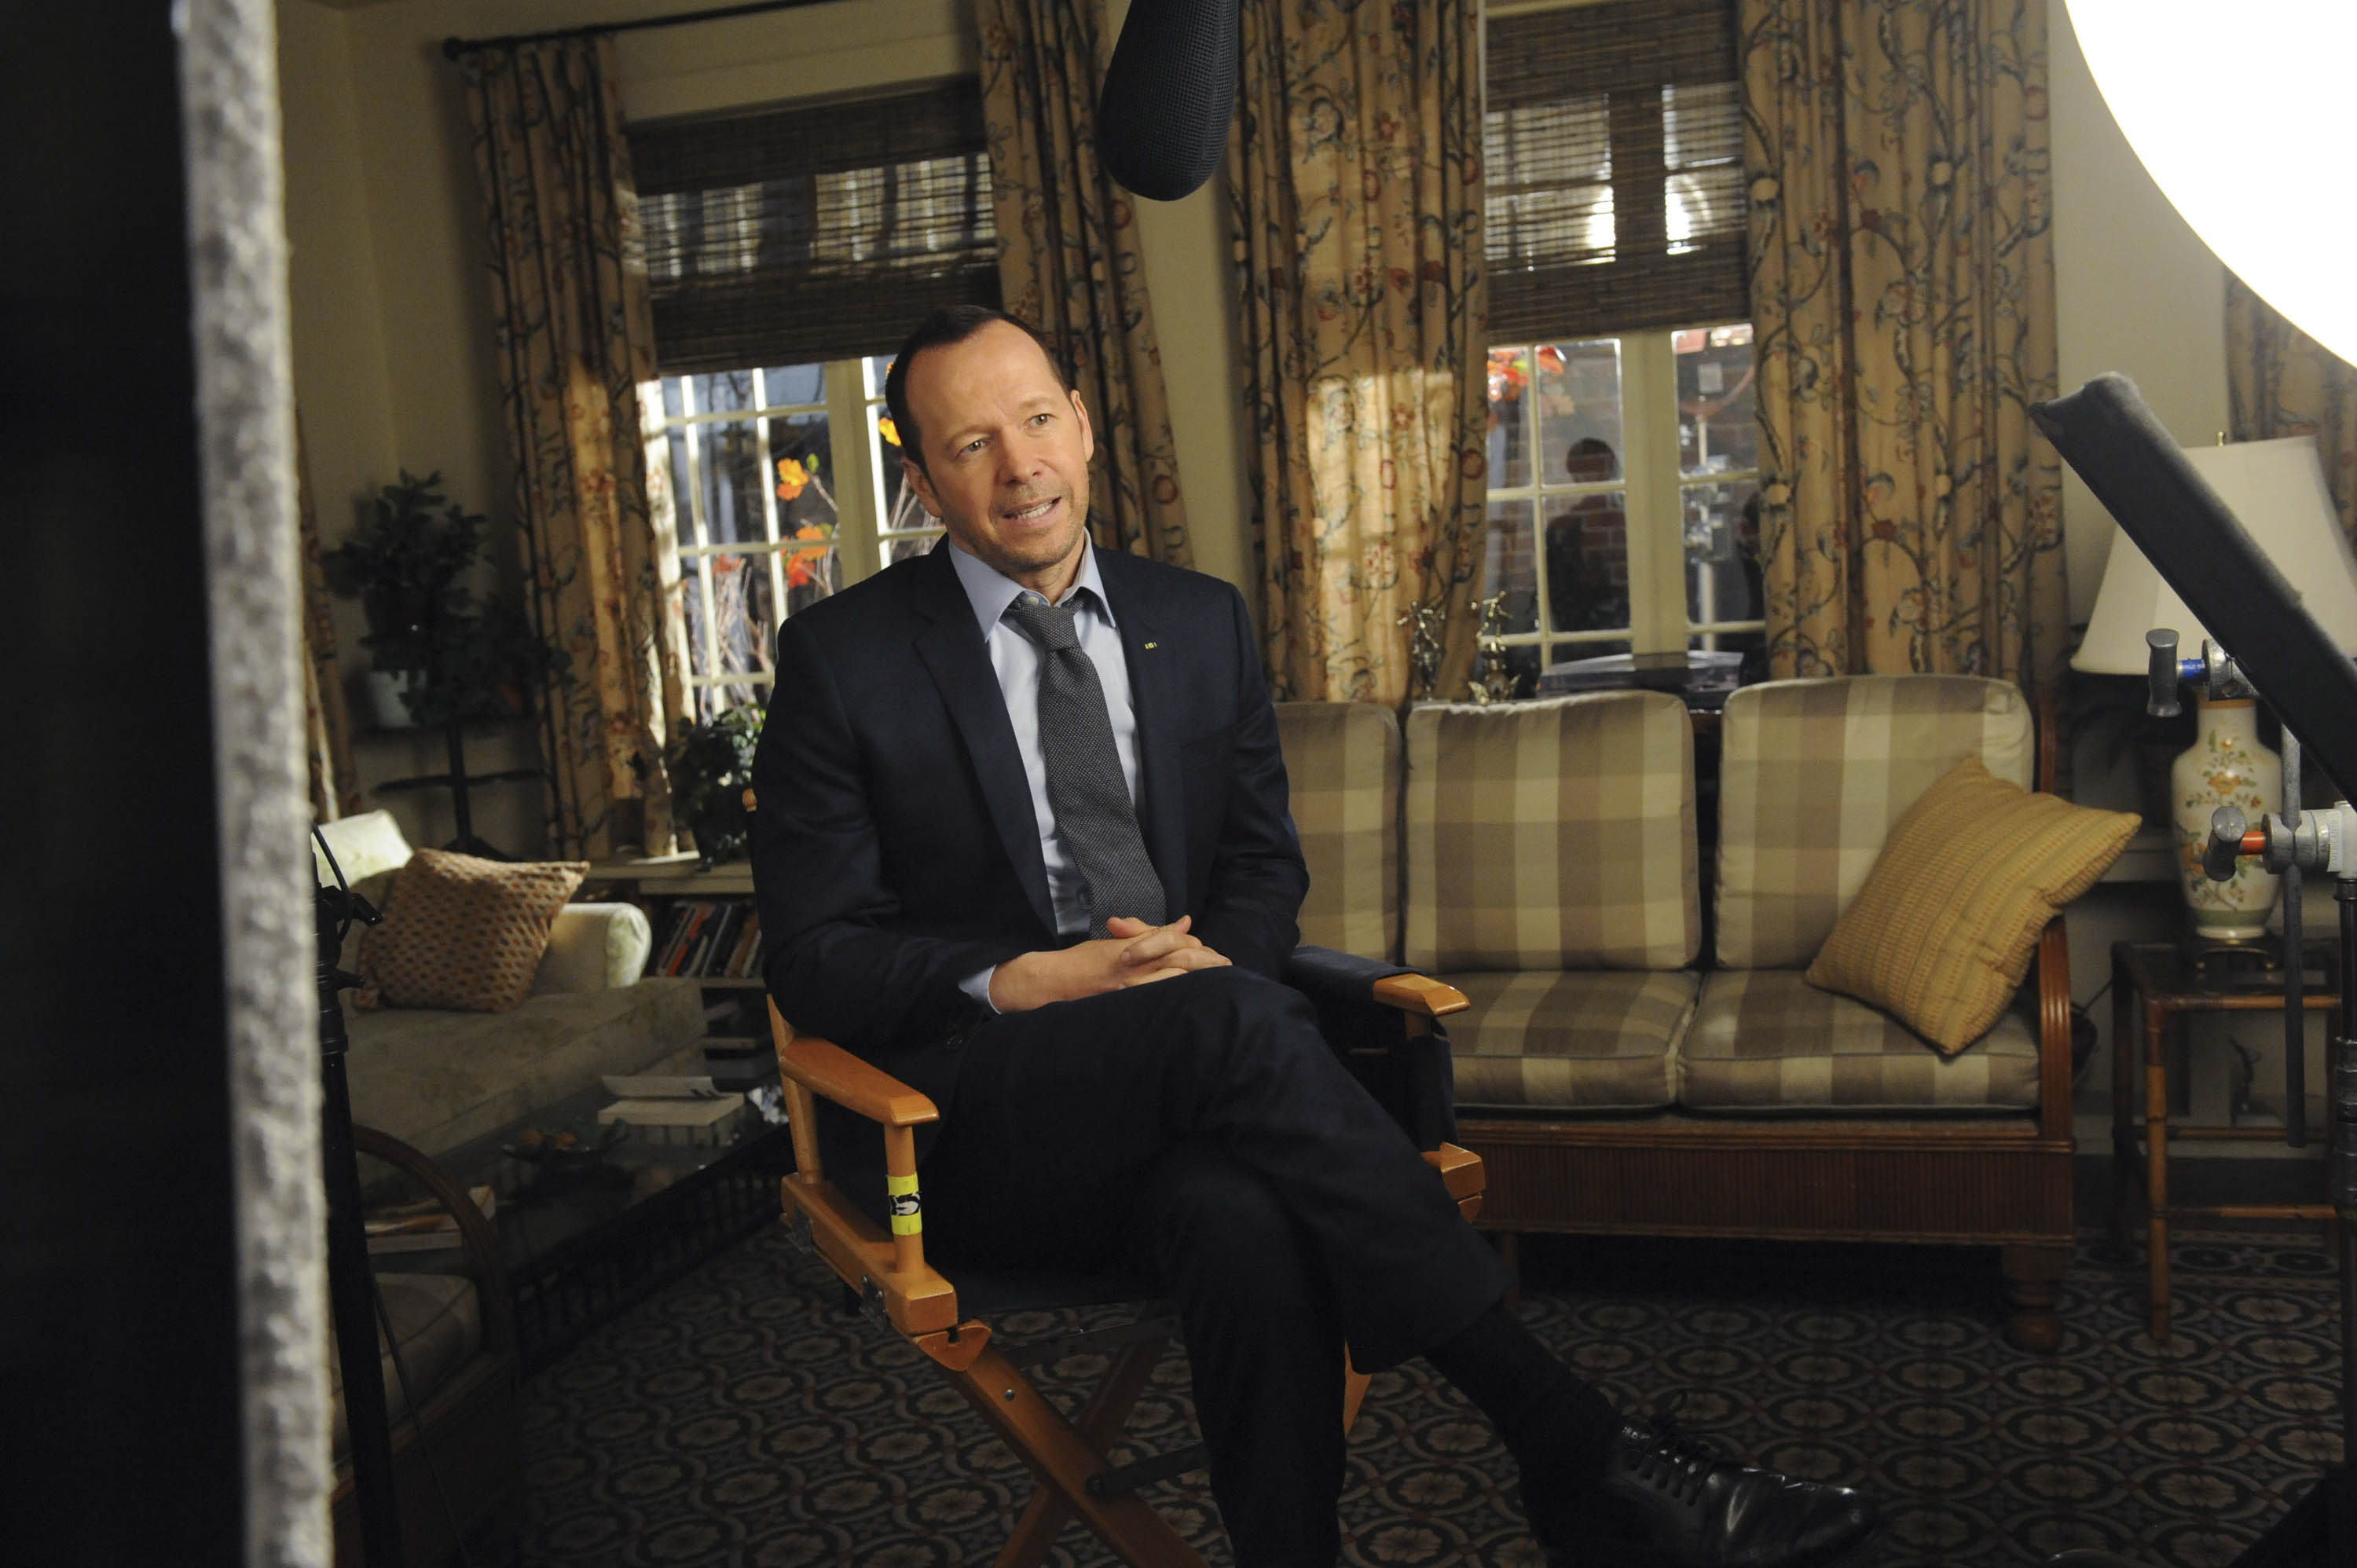 Donnie Wahlberg Speaks Passionately About the 100th Episode of Blue Bloods